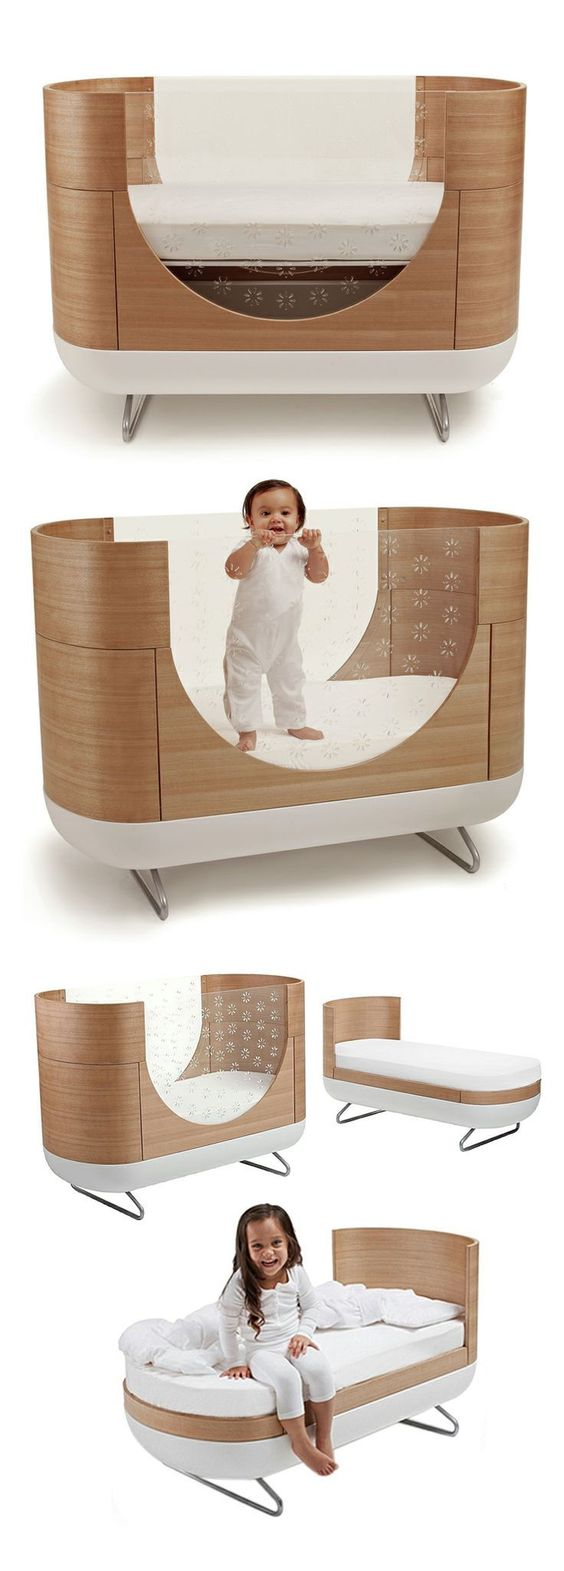 Modern Baby Crib That Converts Into a Toddler Bed! #awesome: